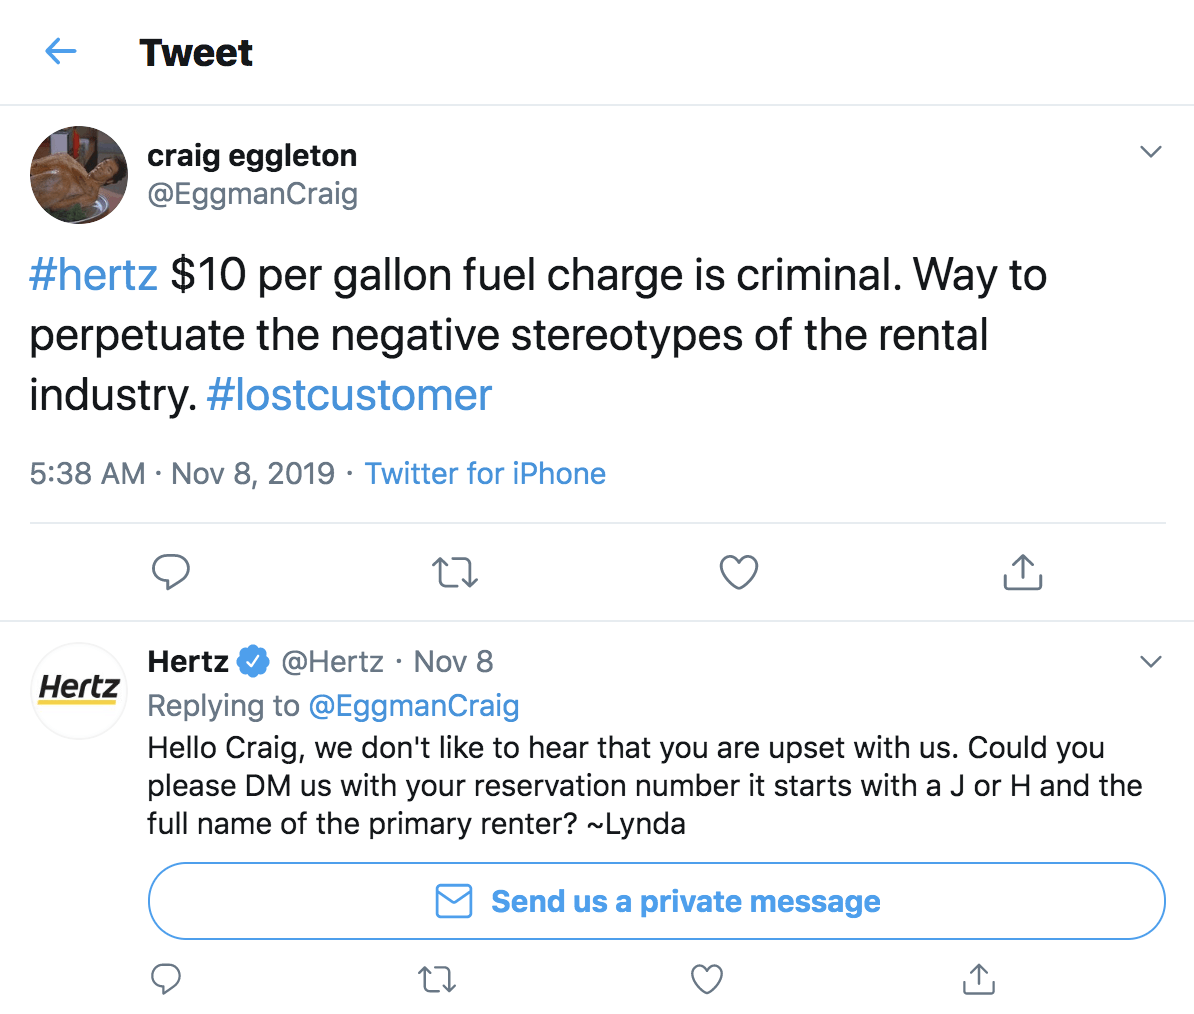 Hertz social media customer service